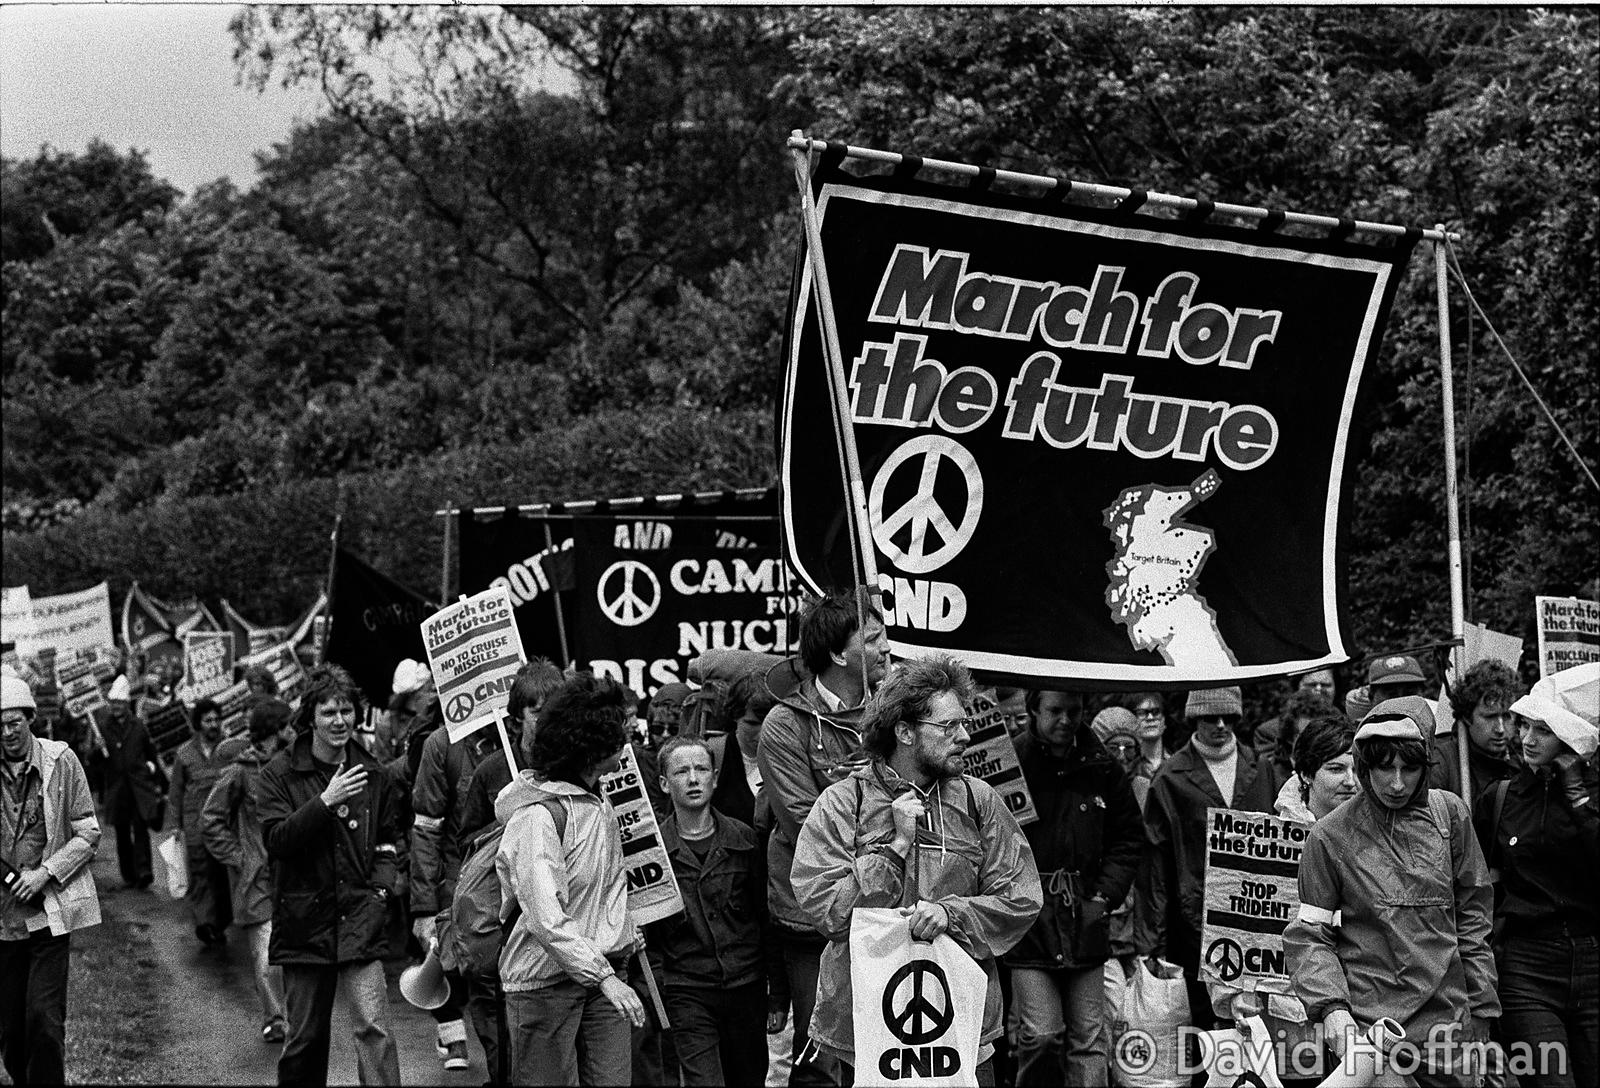 N70-27 CND March for the Future 1981